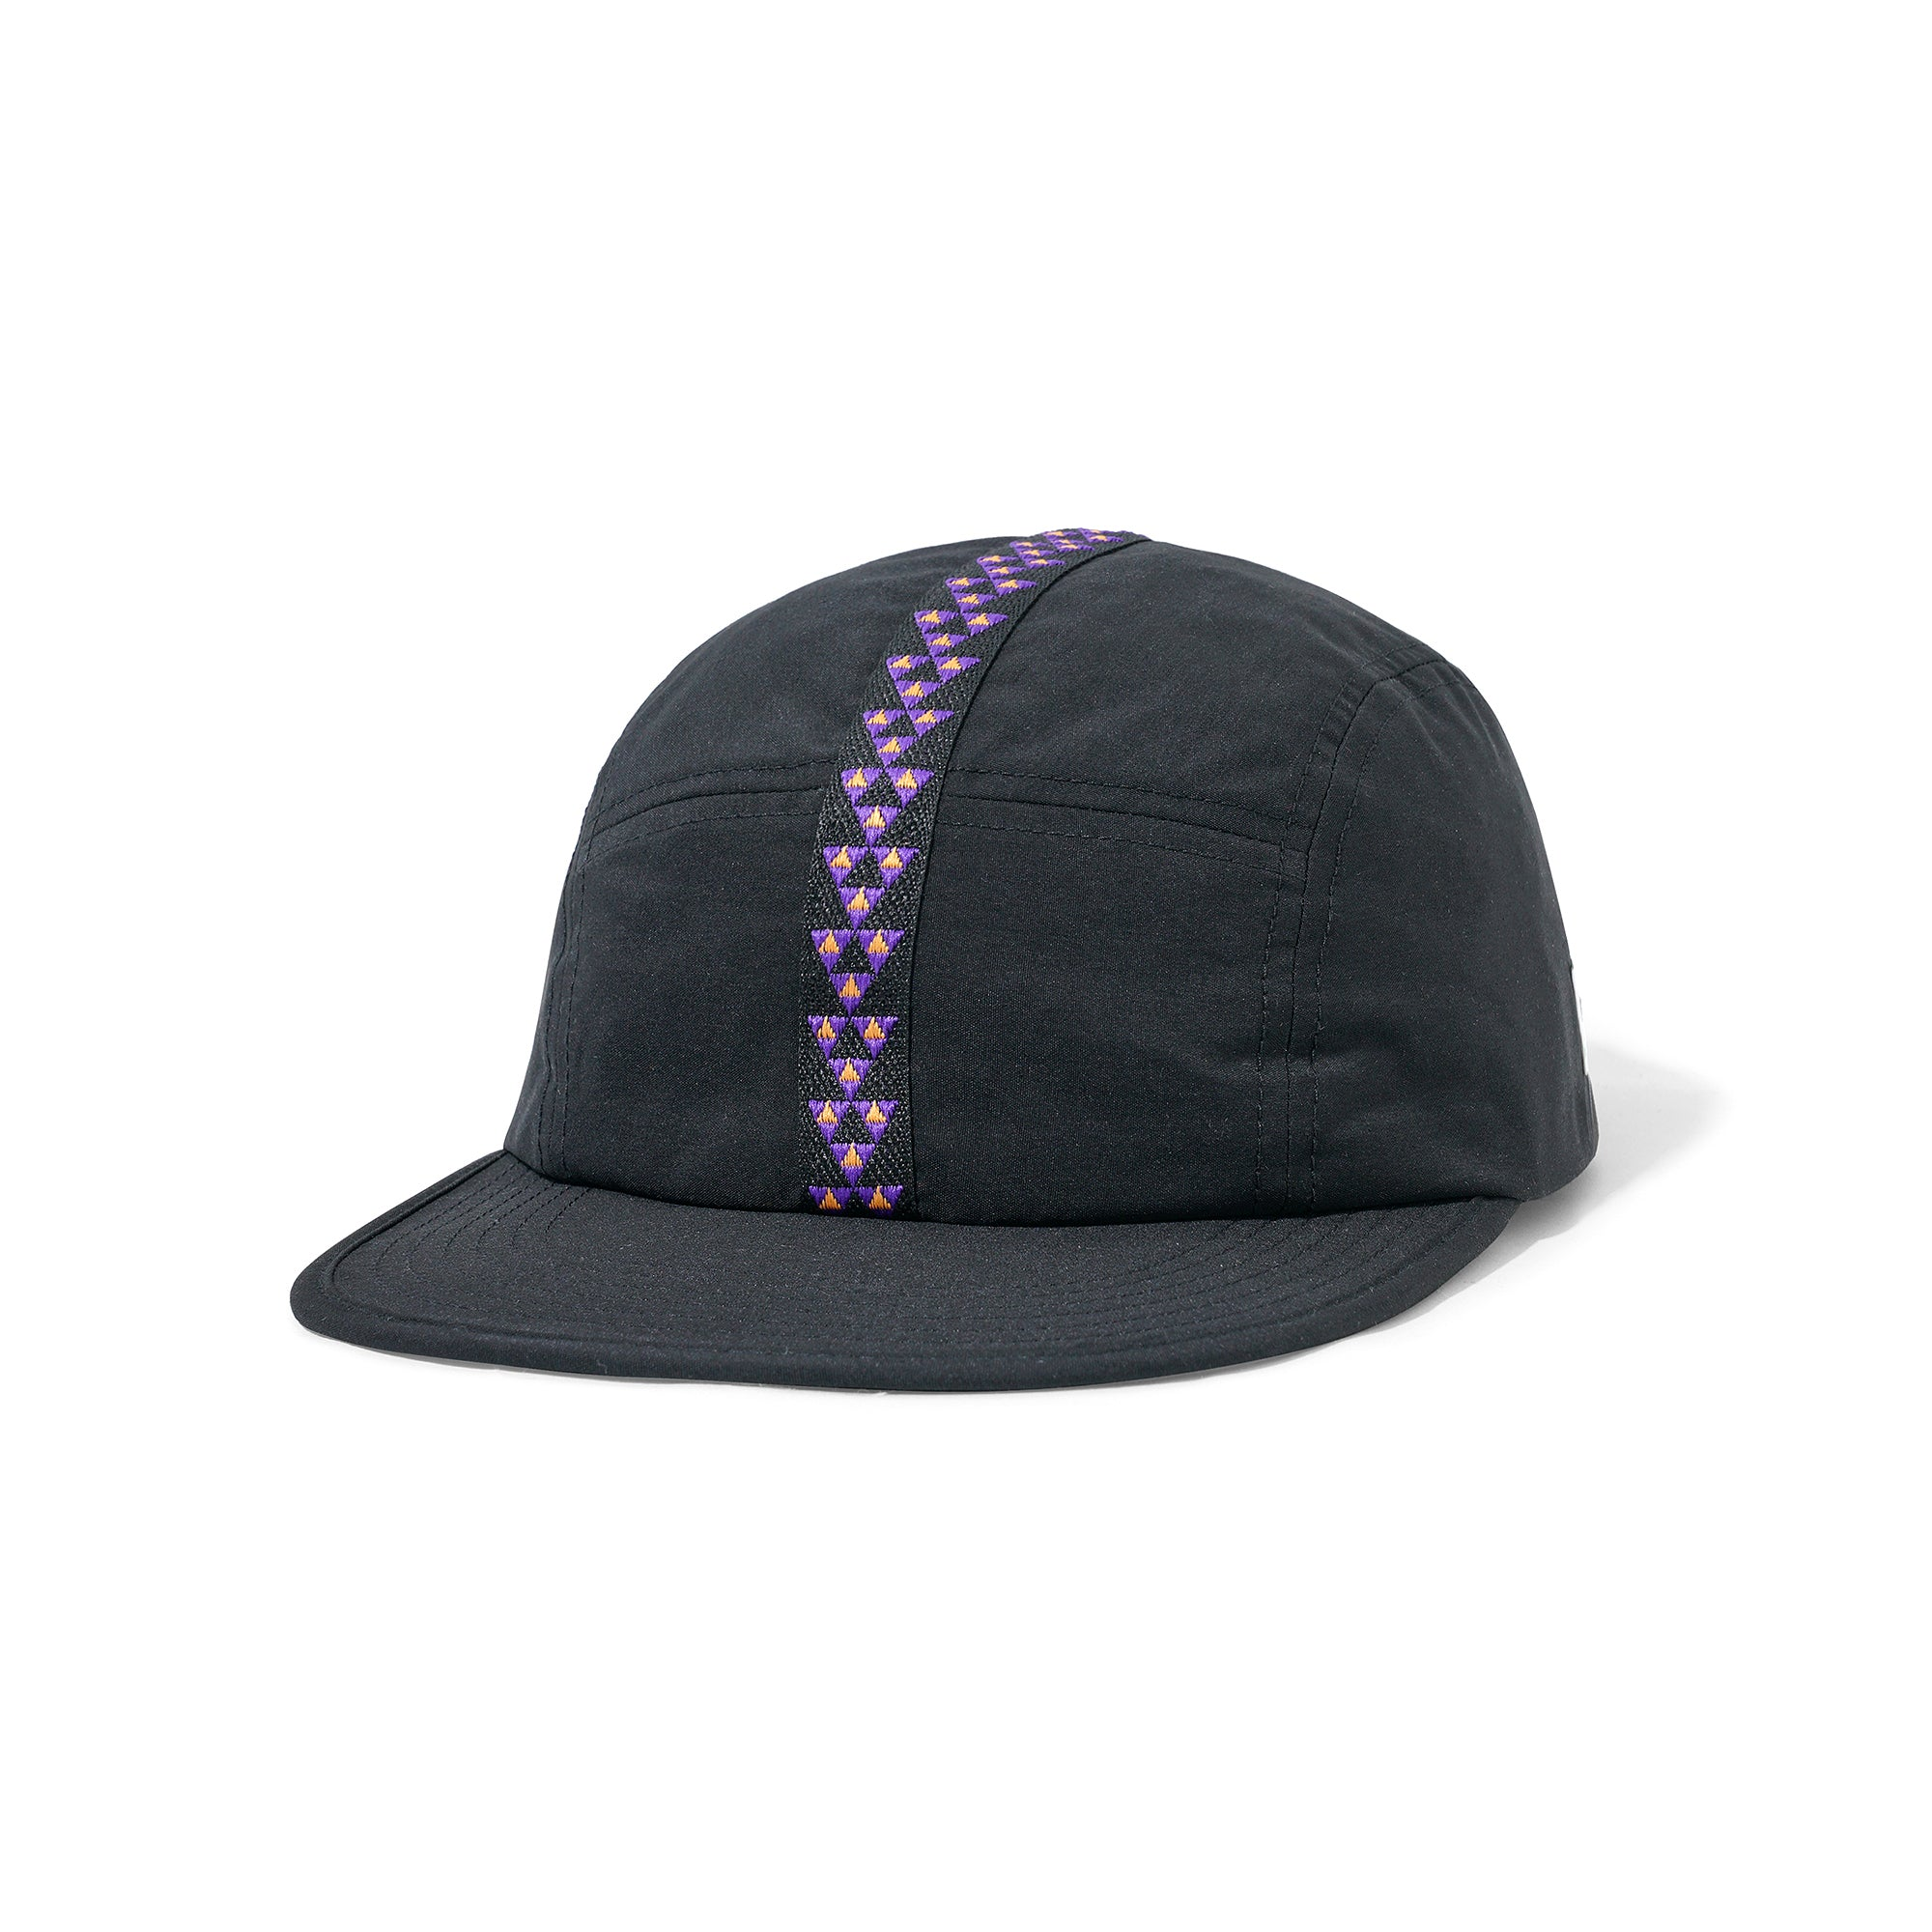 Butter Goods Equipment Camp Cap Product Photo #1